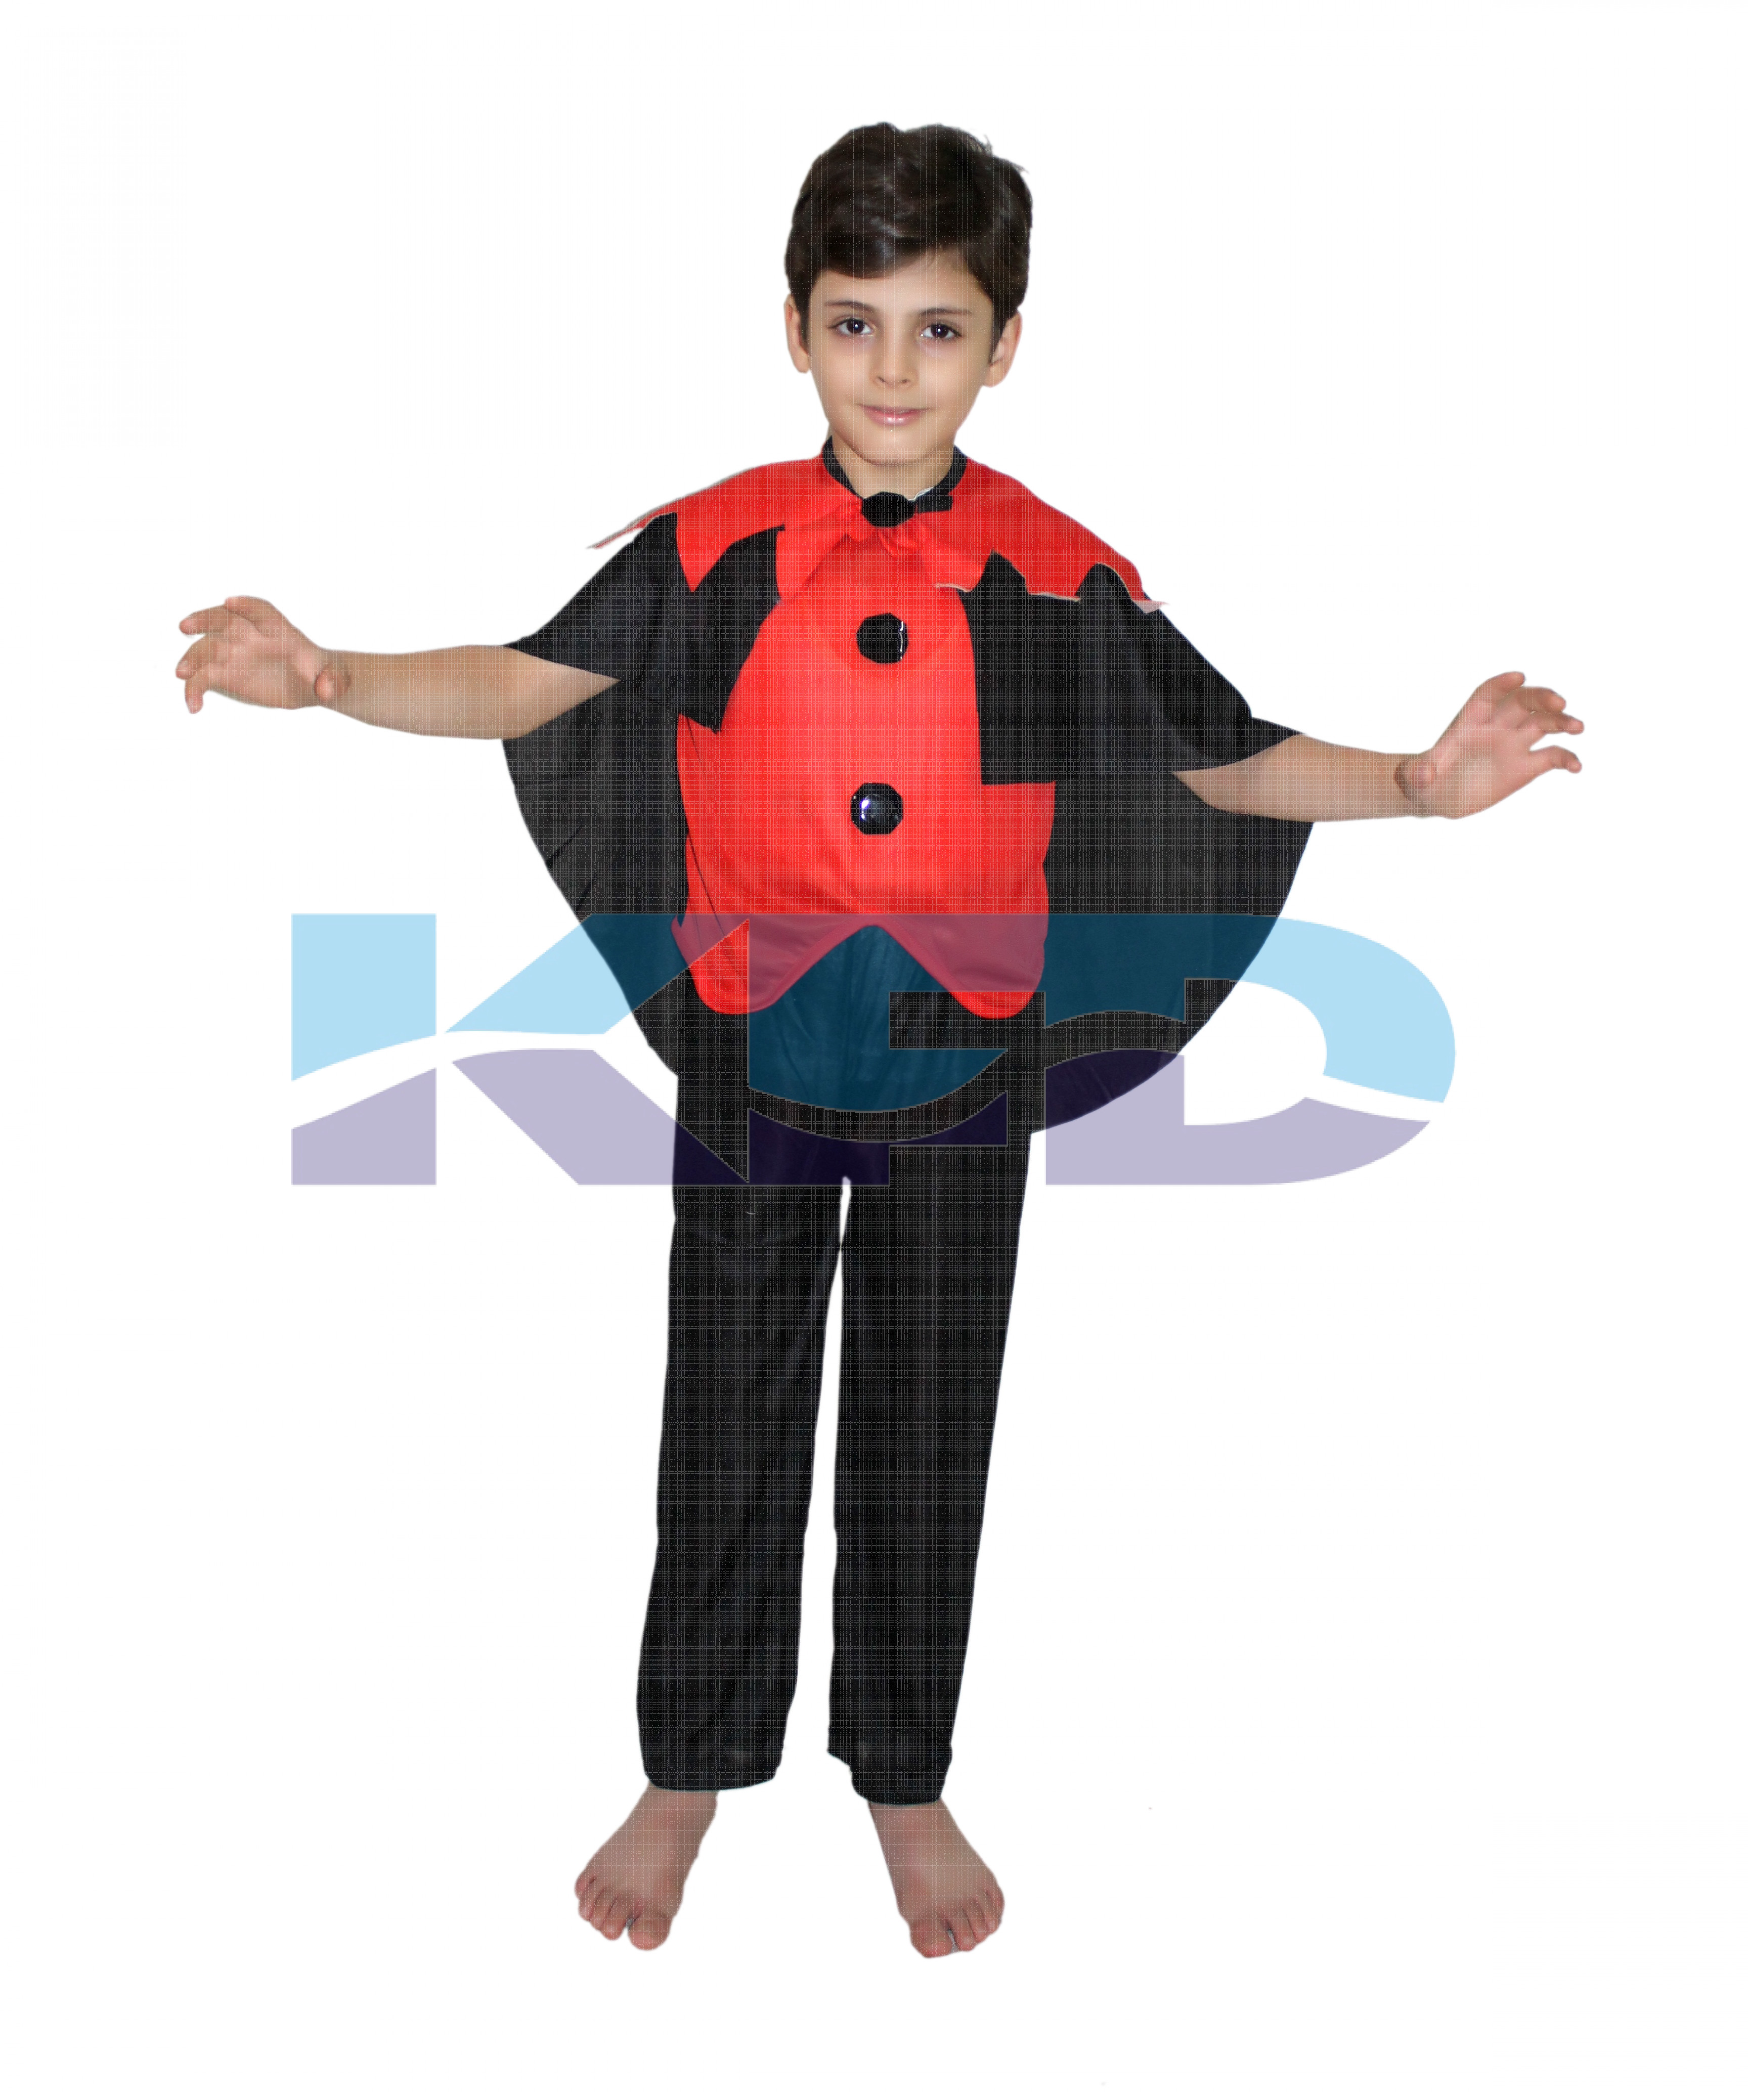 Vampire Dracula Cosplay Costume/California Costume/Halloween Costume For School Annual function/Theme Party/Competition/Stage Shows Dress